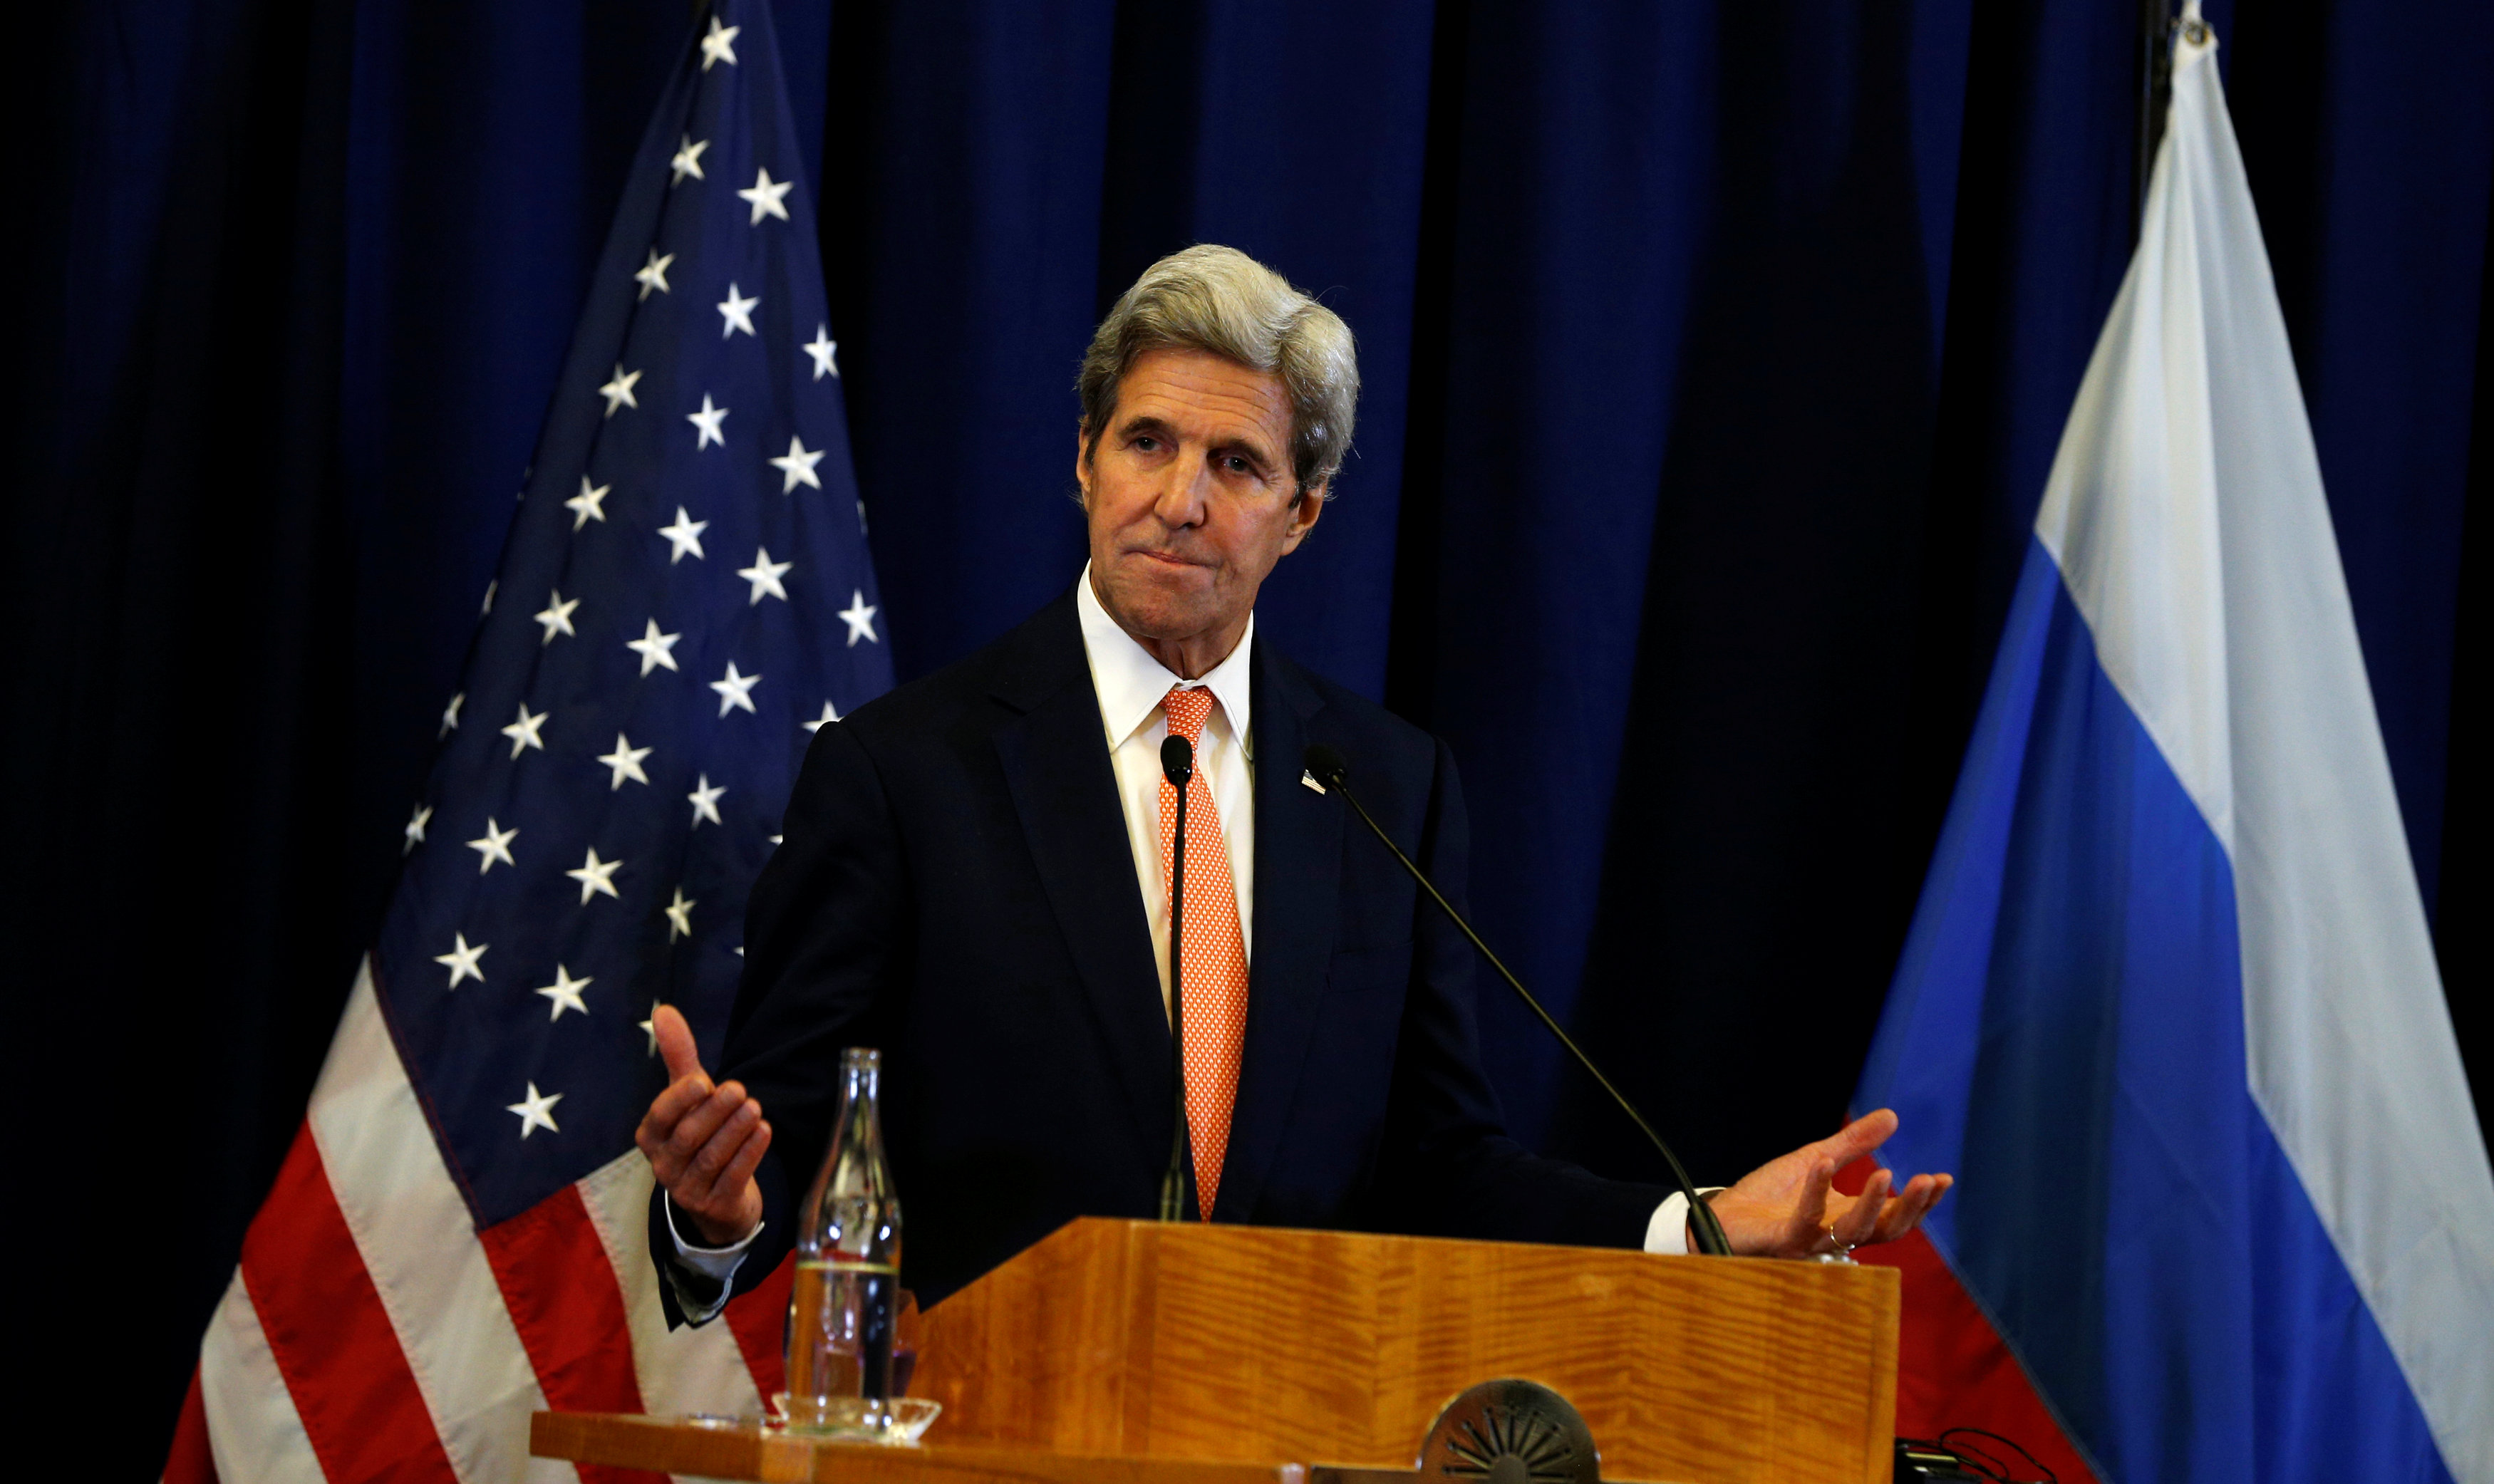 Kerry hands 2016 09 09T232334Z 1342888076 S1AEUAJVPUAB RTRMADP 3 MIDEAST CRISIS SYRIA KERRY